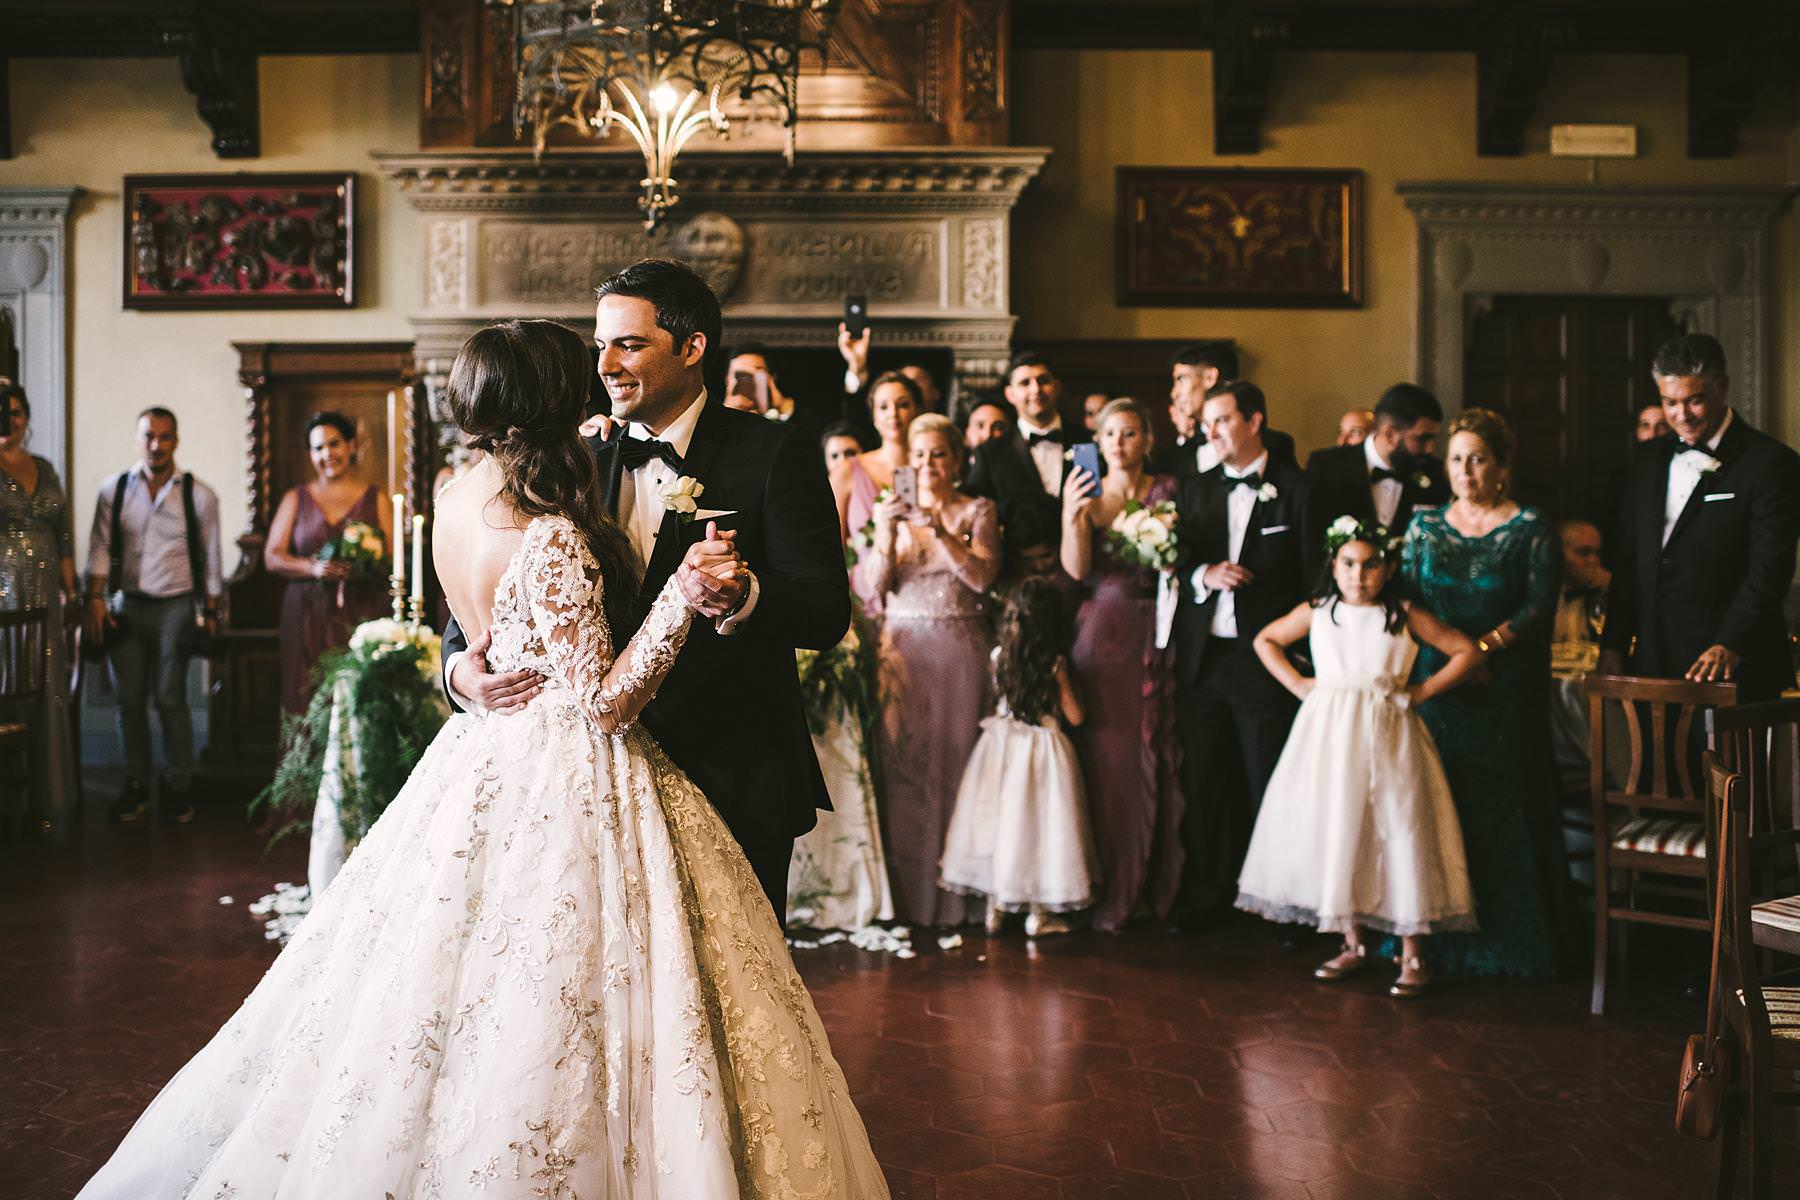 Bride and groom emotional first dance at Valenzano Castle in Tuscany near Arezzo. Destination wedding in Italy